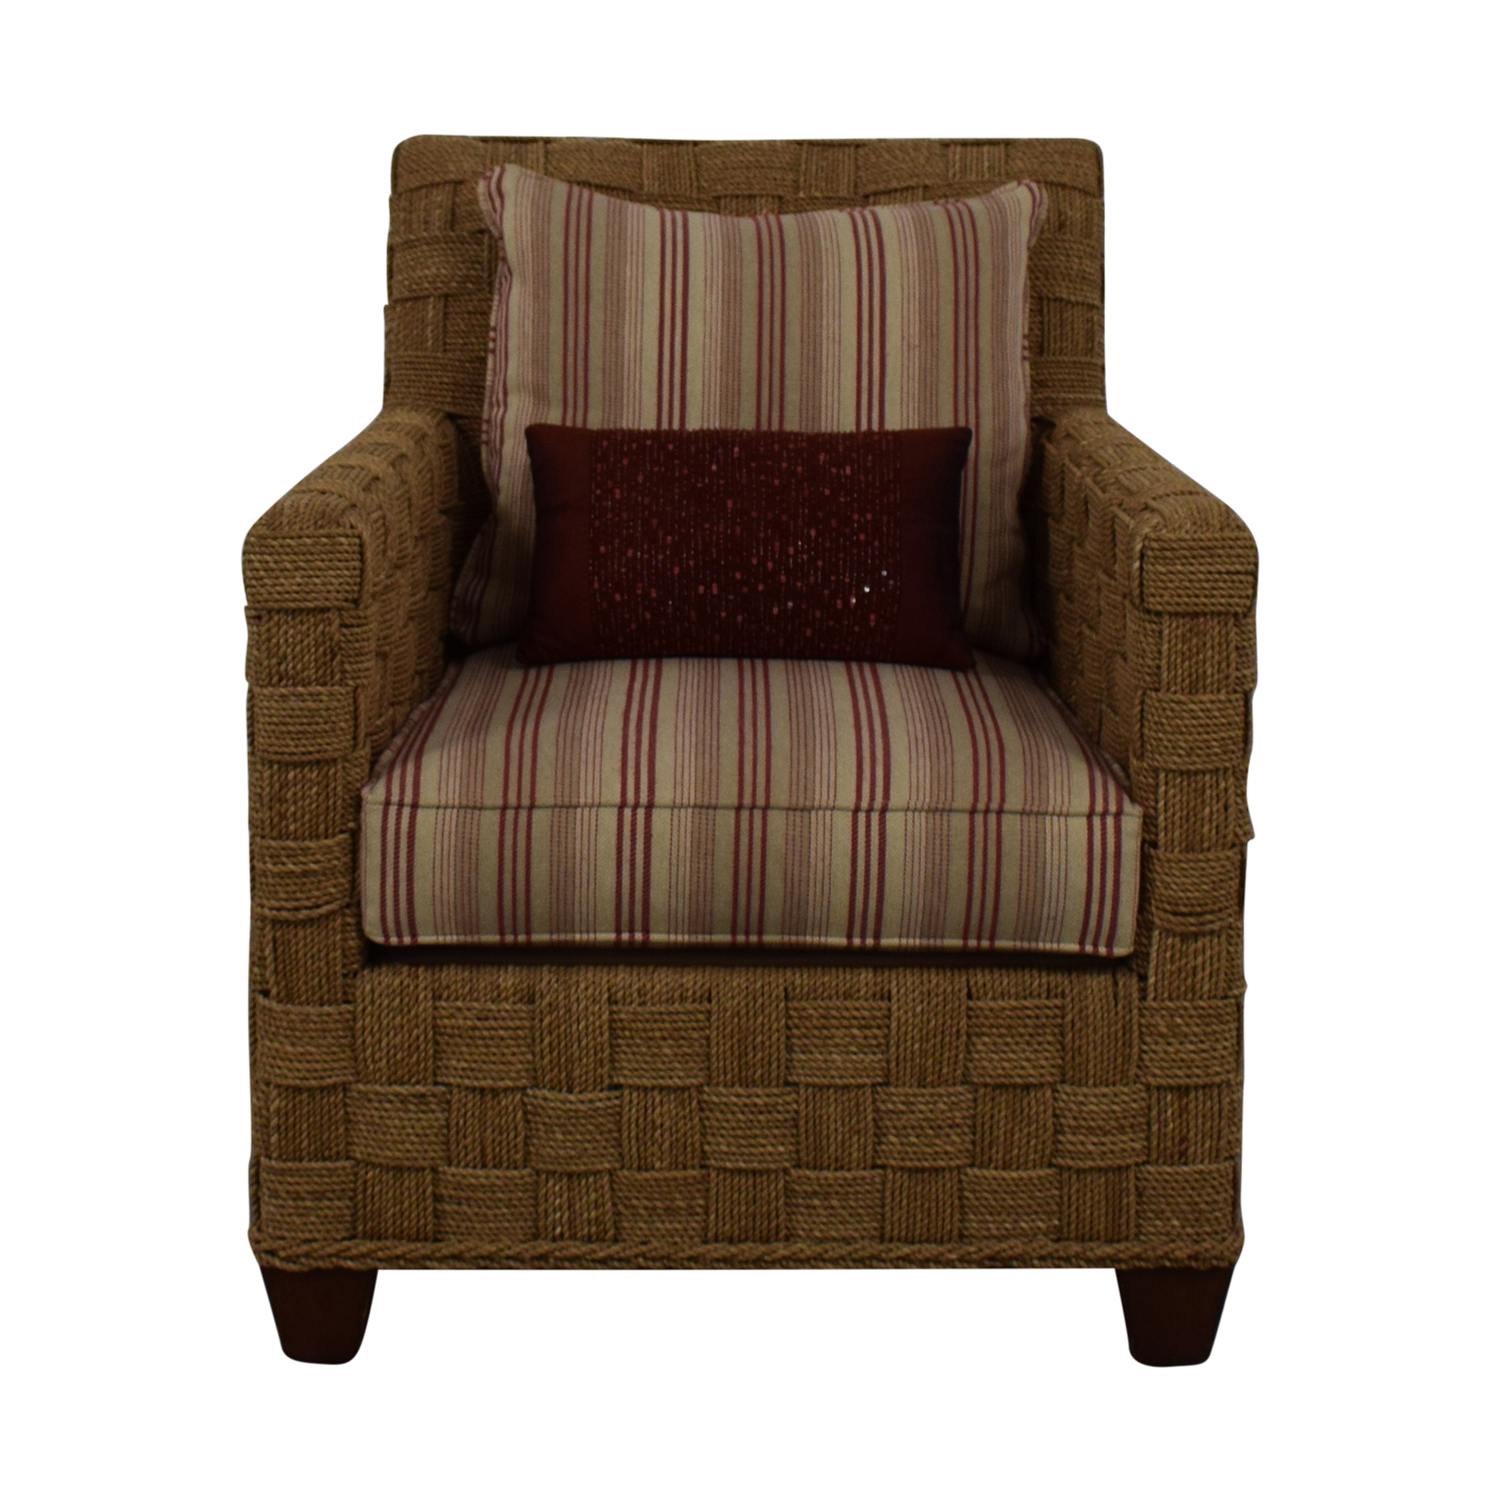 Ethan Allen Ethan Allen Balta Accent Chair price